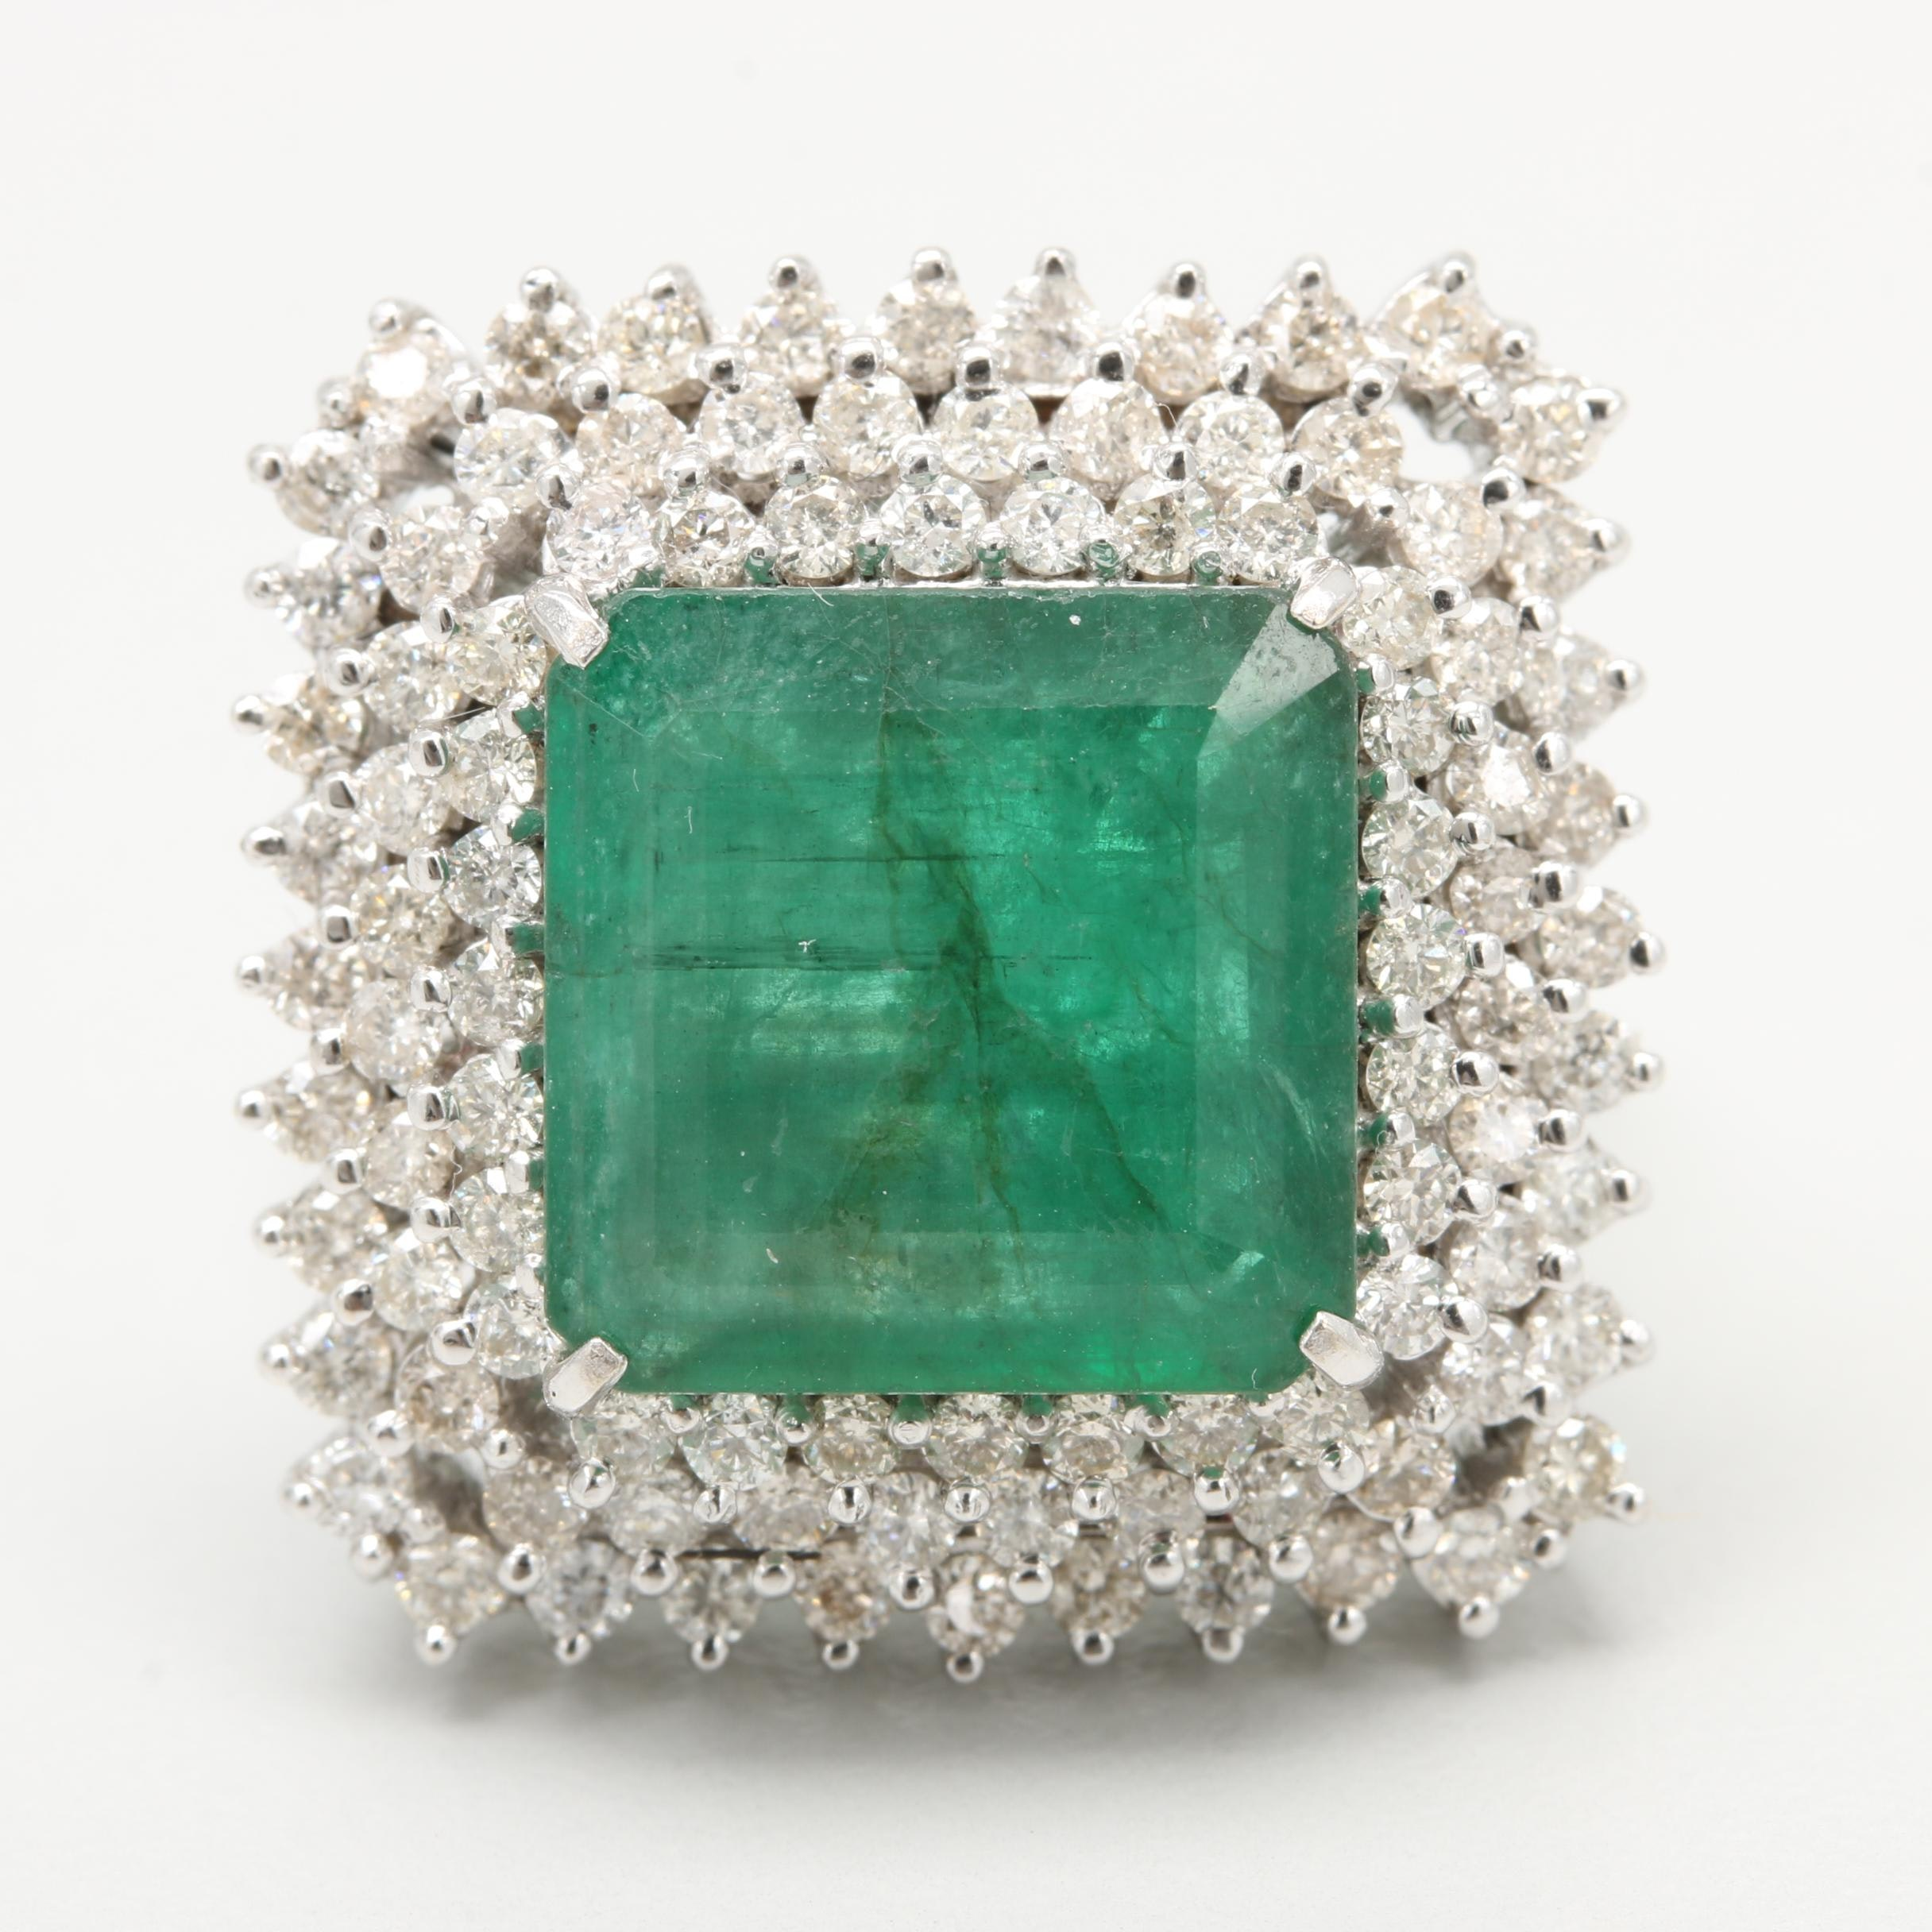 18K White Gold 5.71 CT Emerald and 1.78 CTW Diamond Cocktail Ring